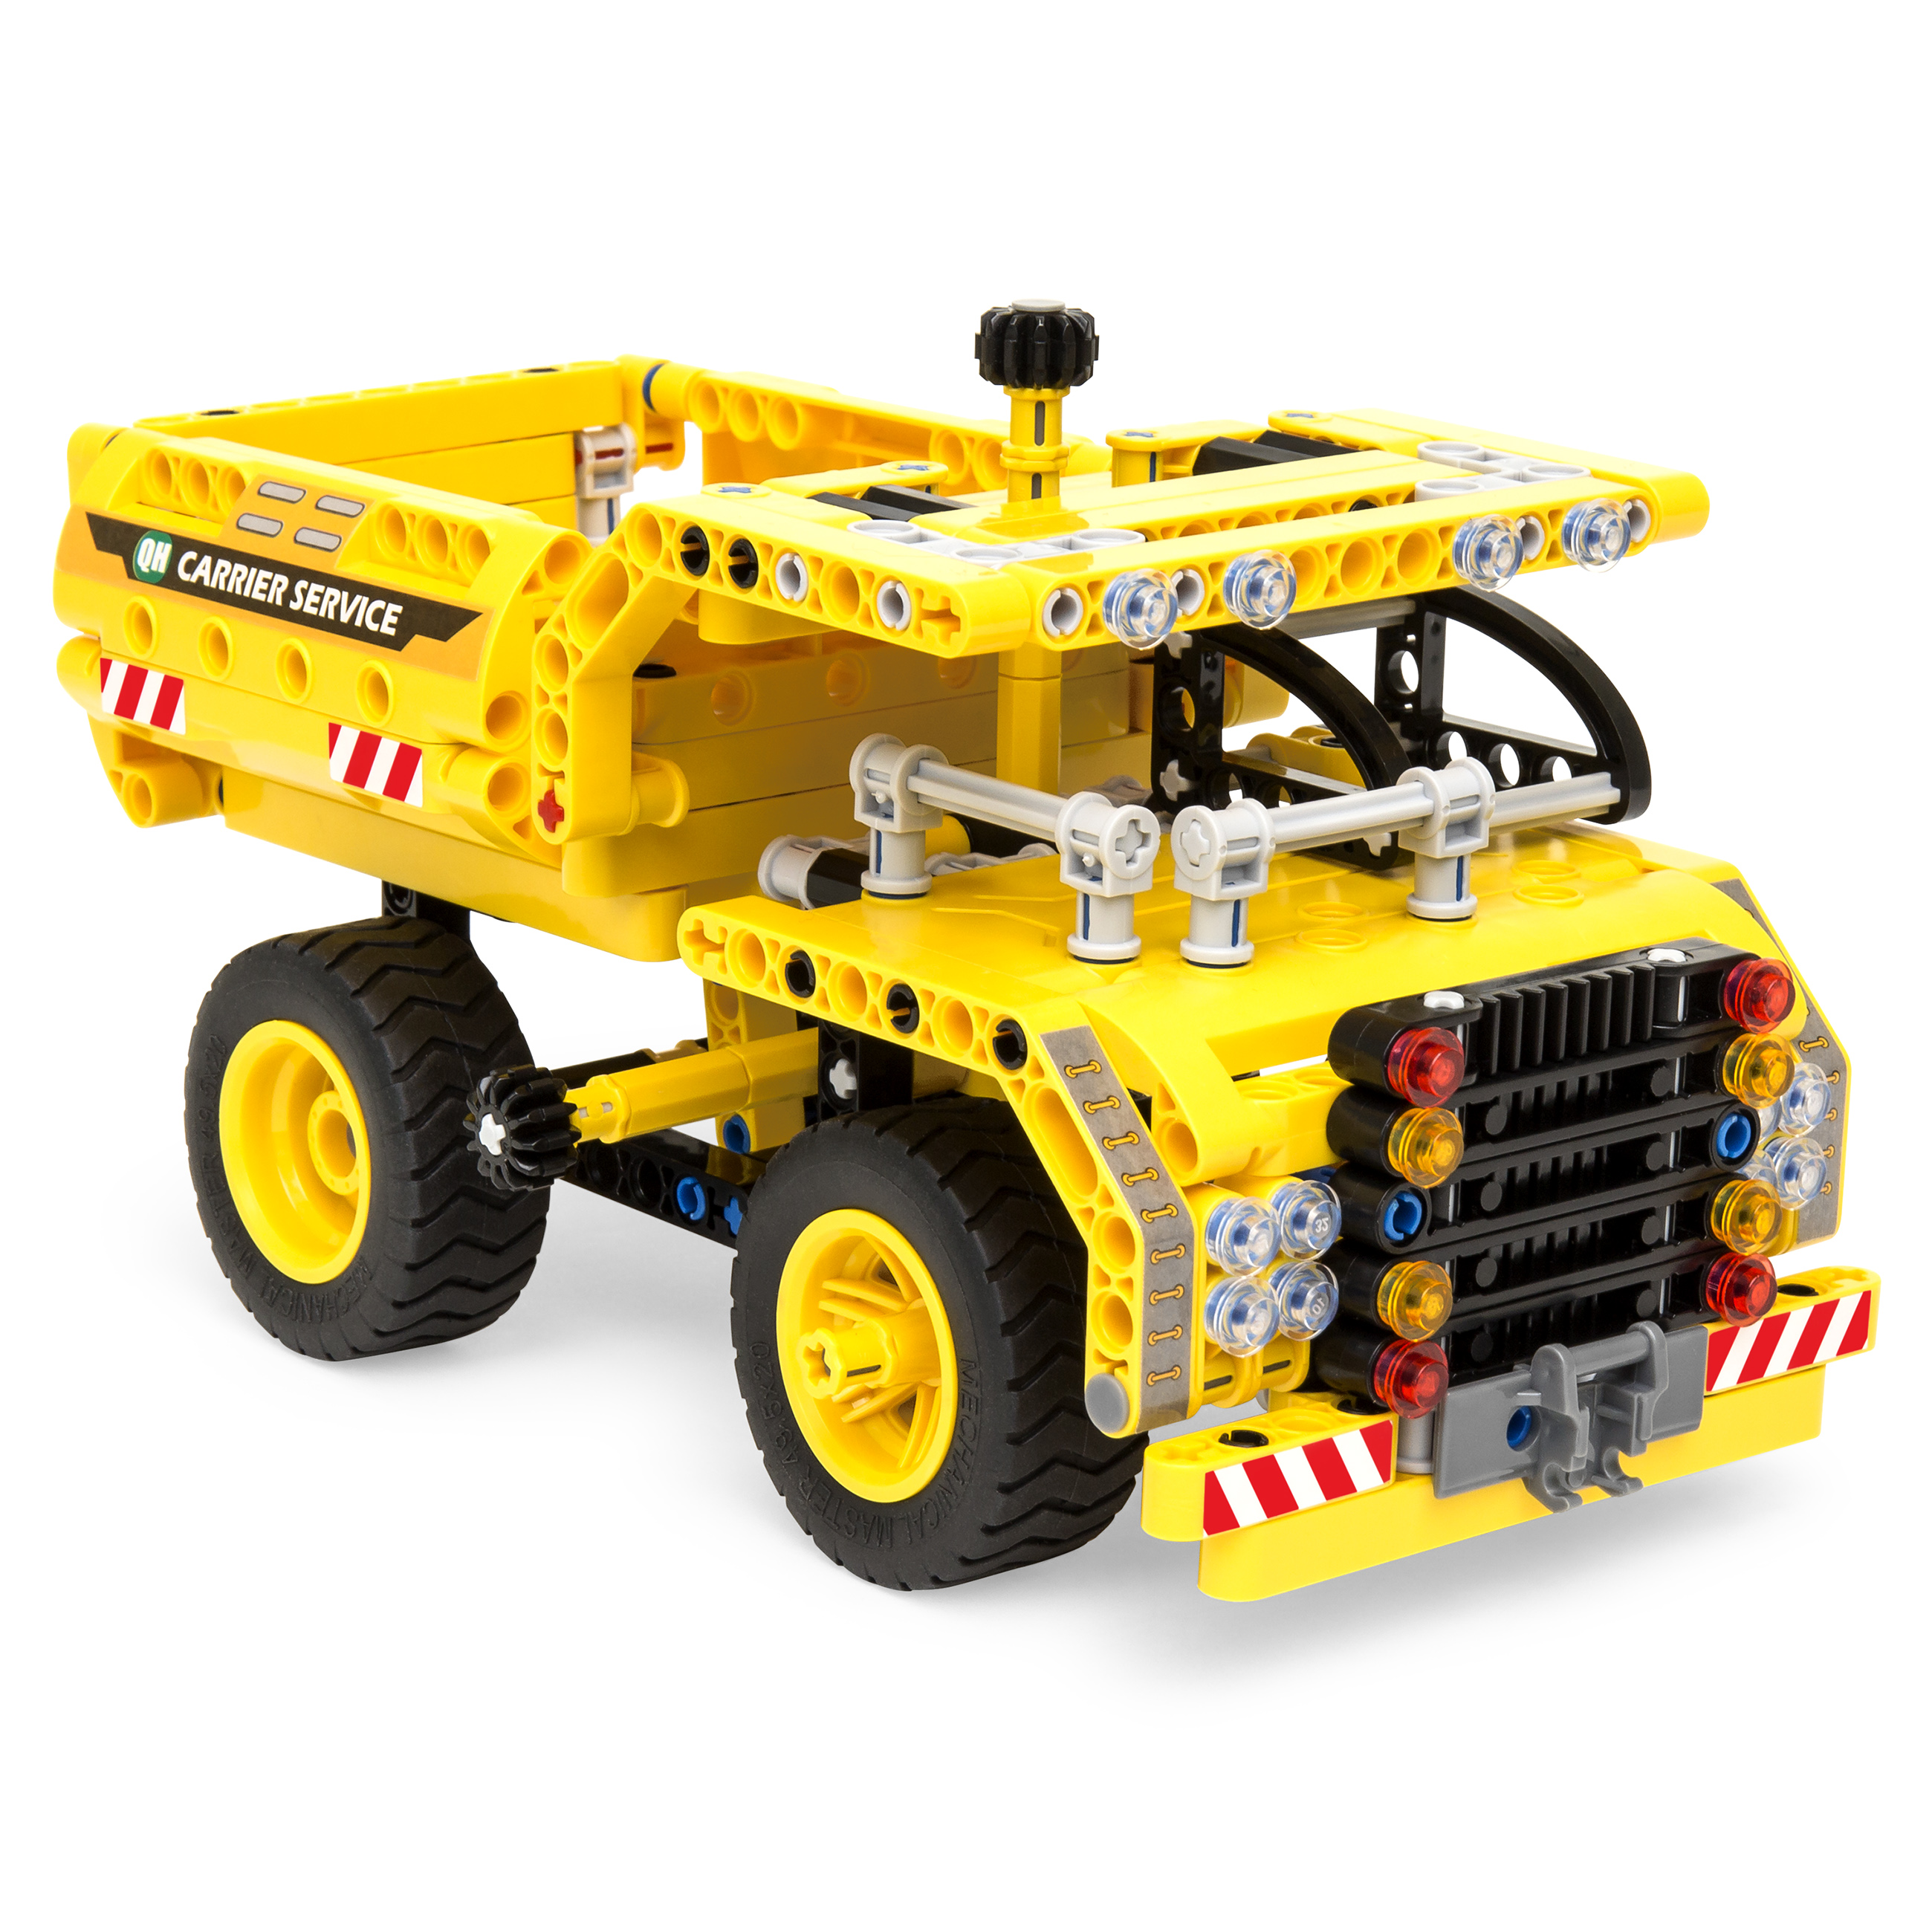 Best Choice Products 361-Piece 2-in-1 Kids STEM Educational Take-Apart Construction Engineering Building Toy Play Set w/ Dump Truck, Jet Airplane - Yellow